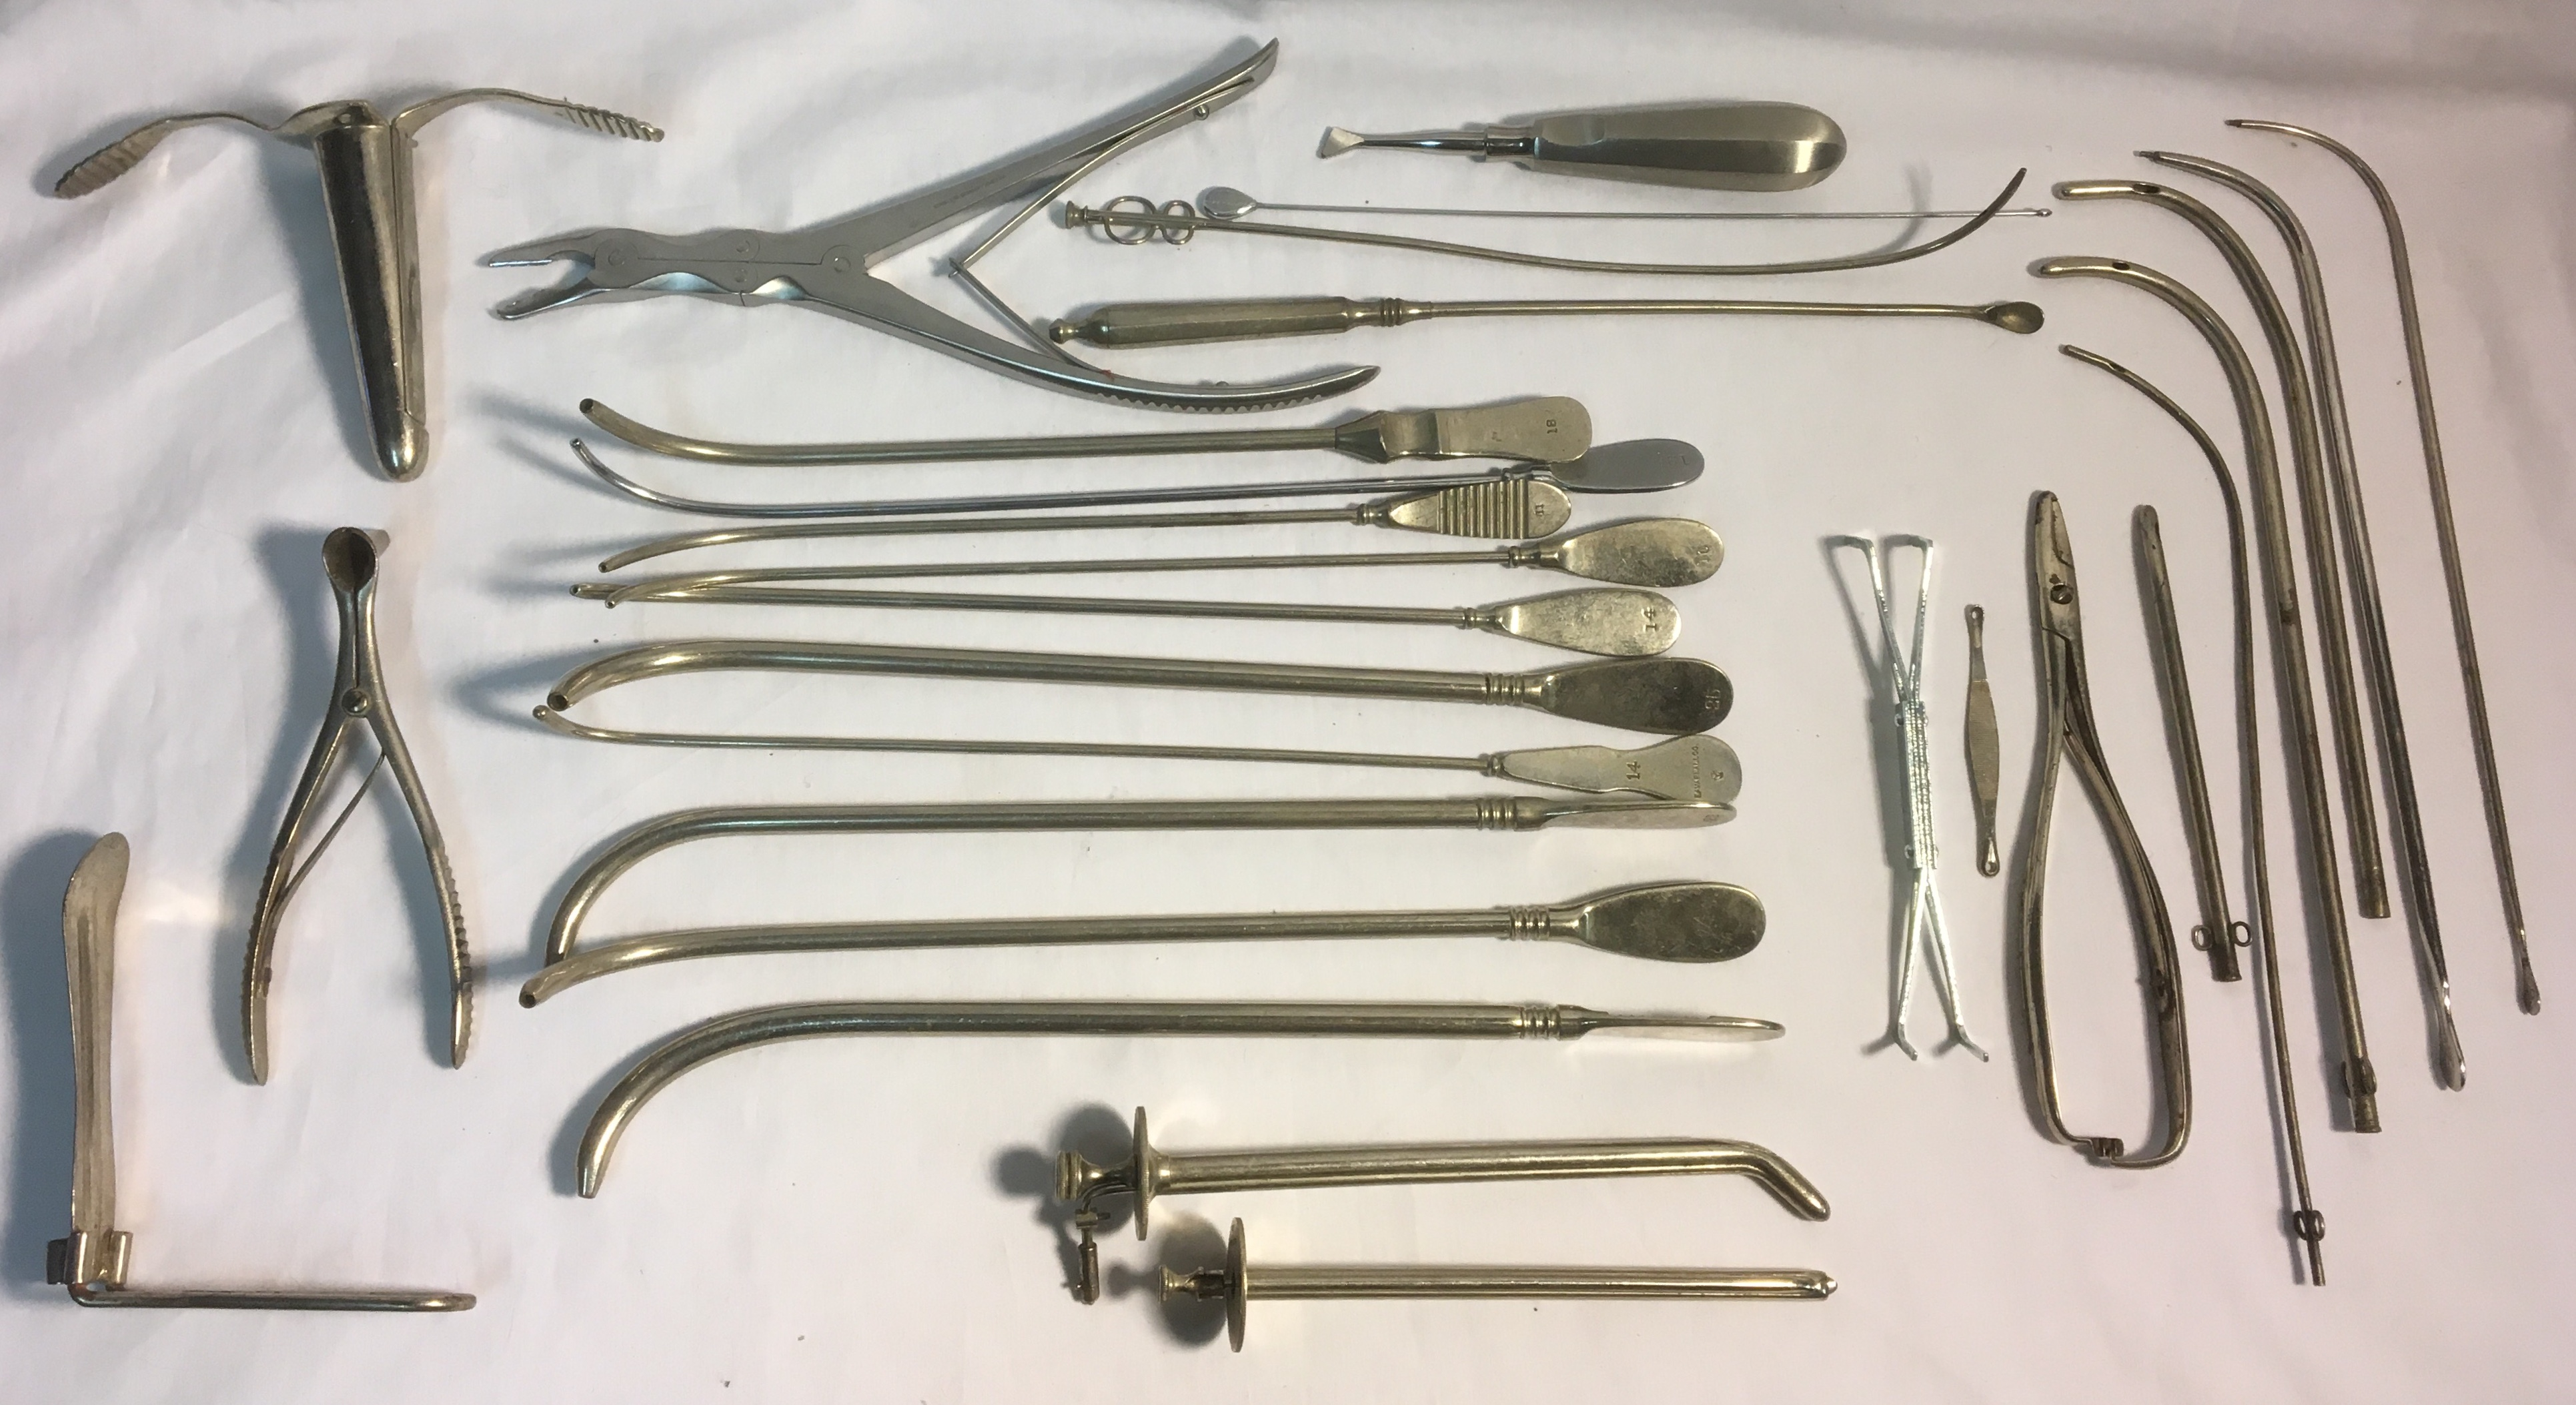 Assorted Medical Tools